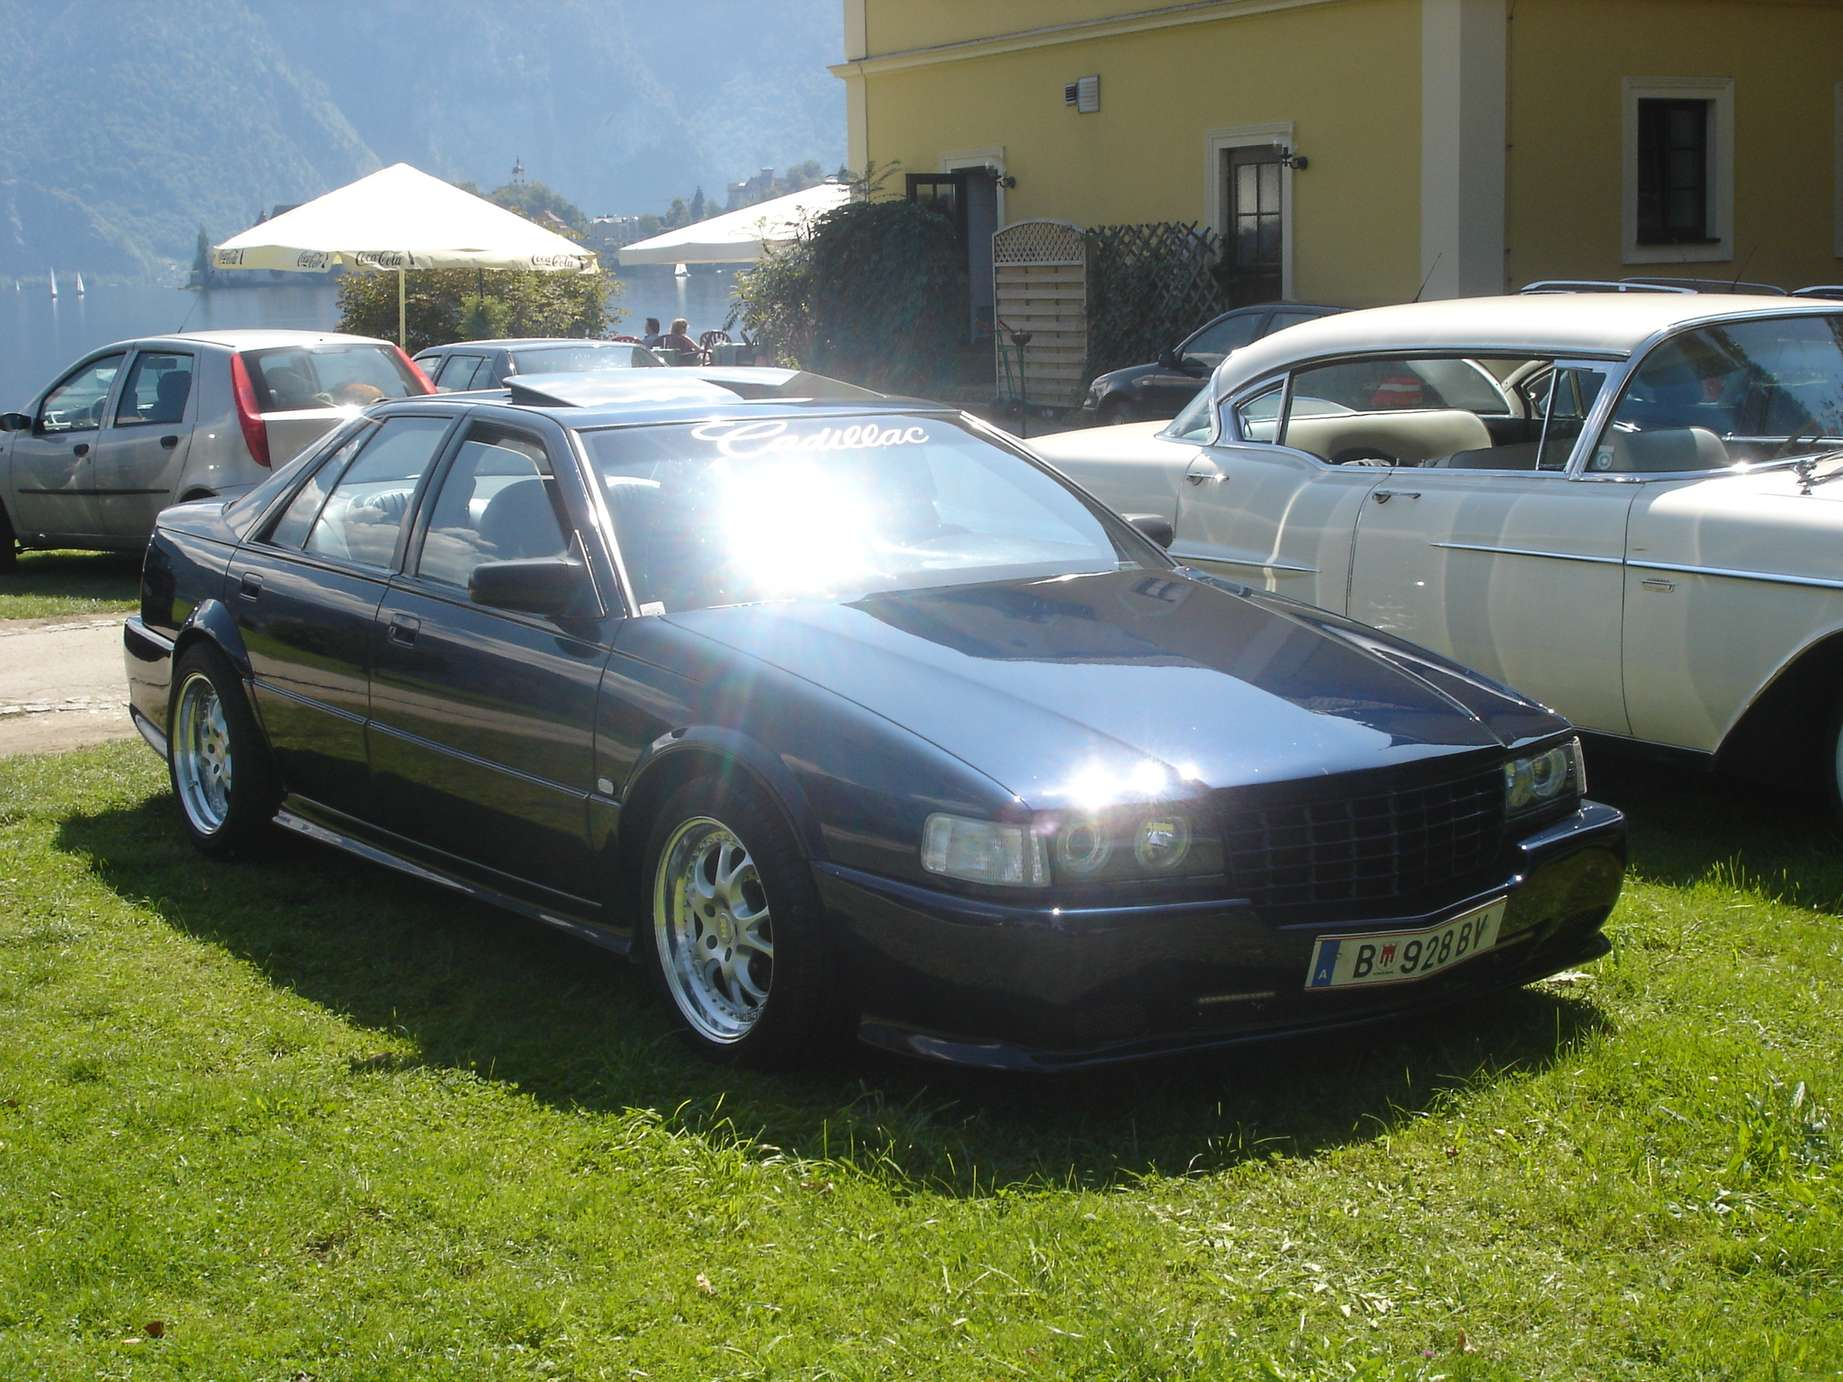 Cadillac Seville STS #8665500